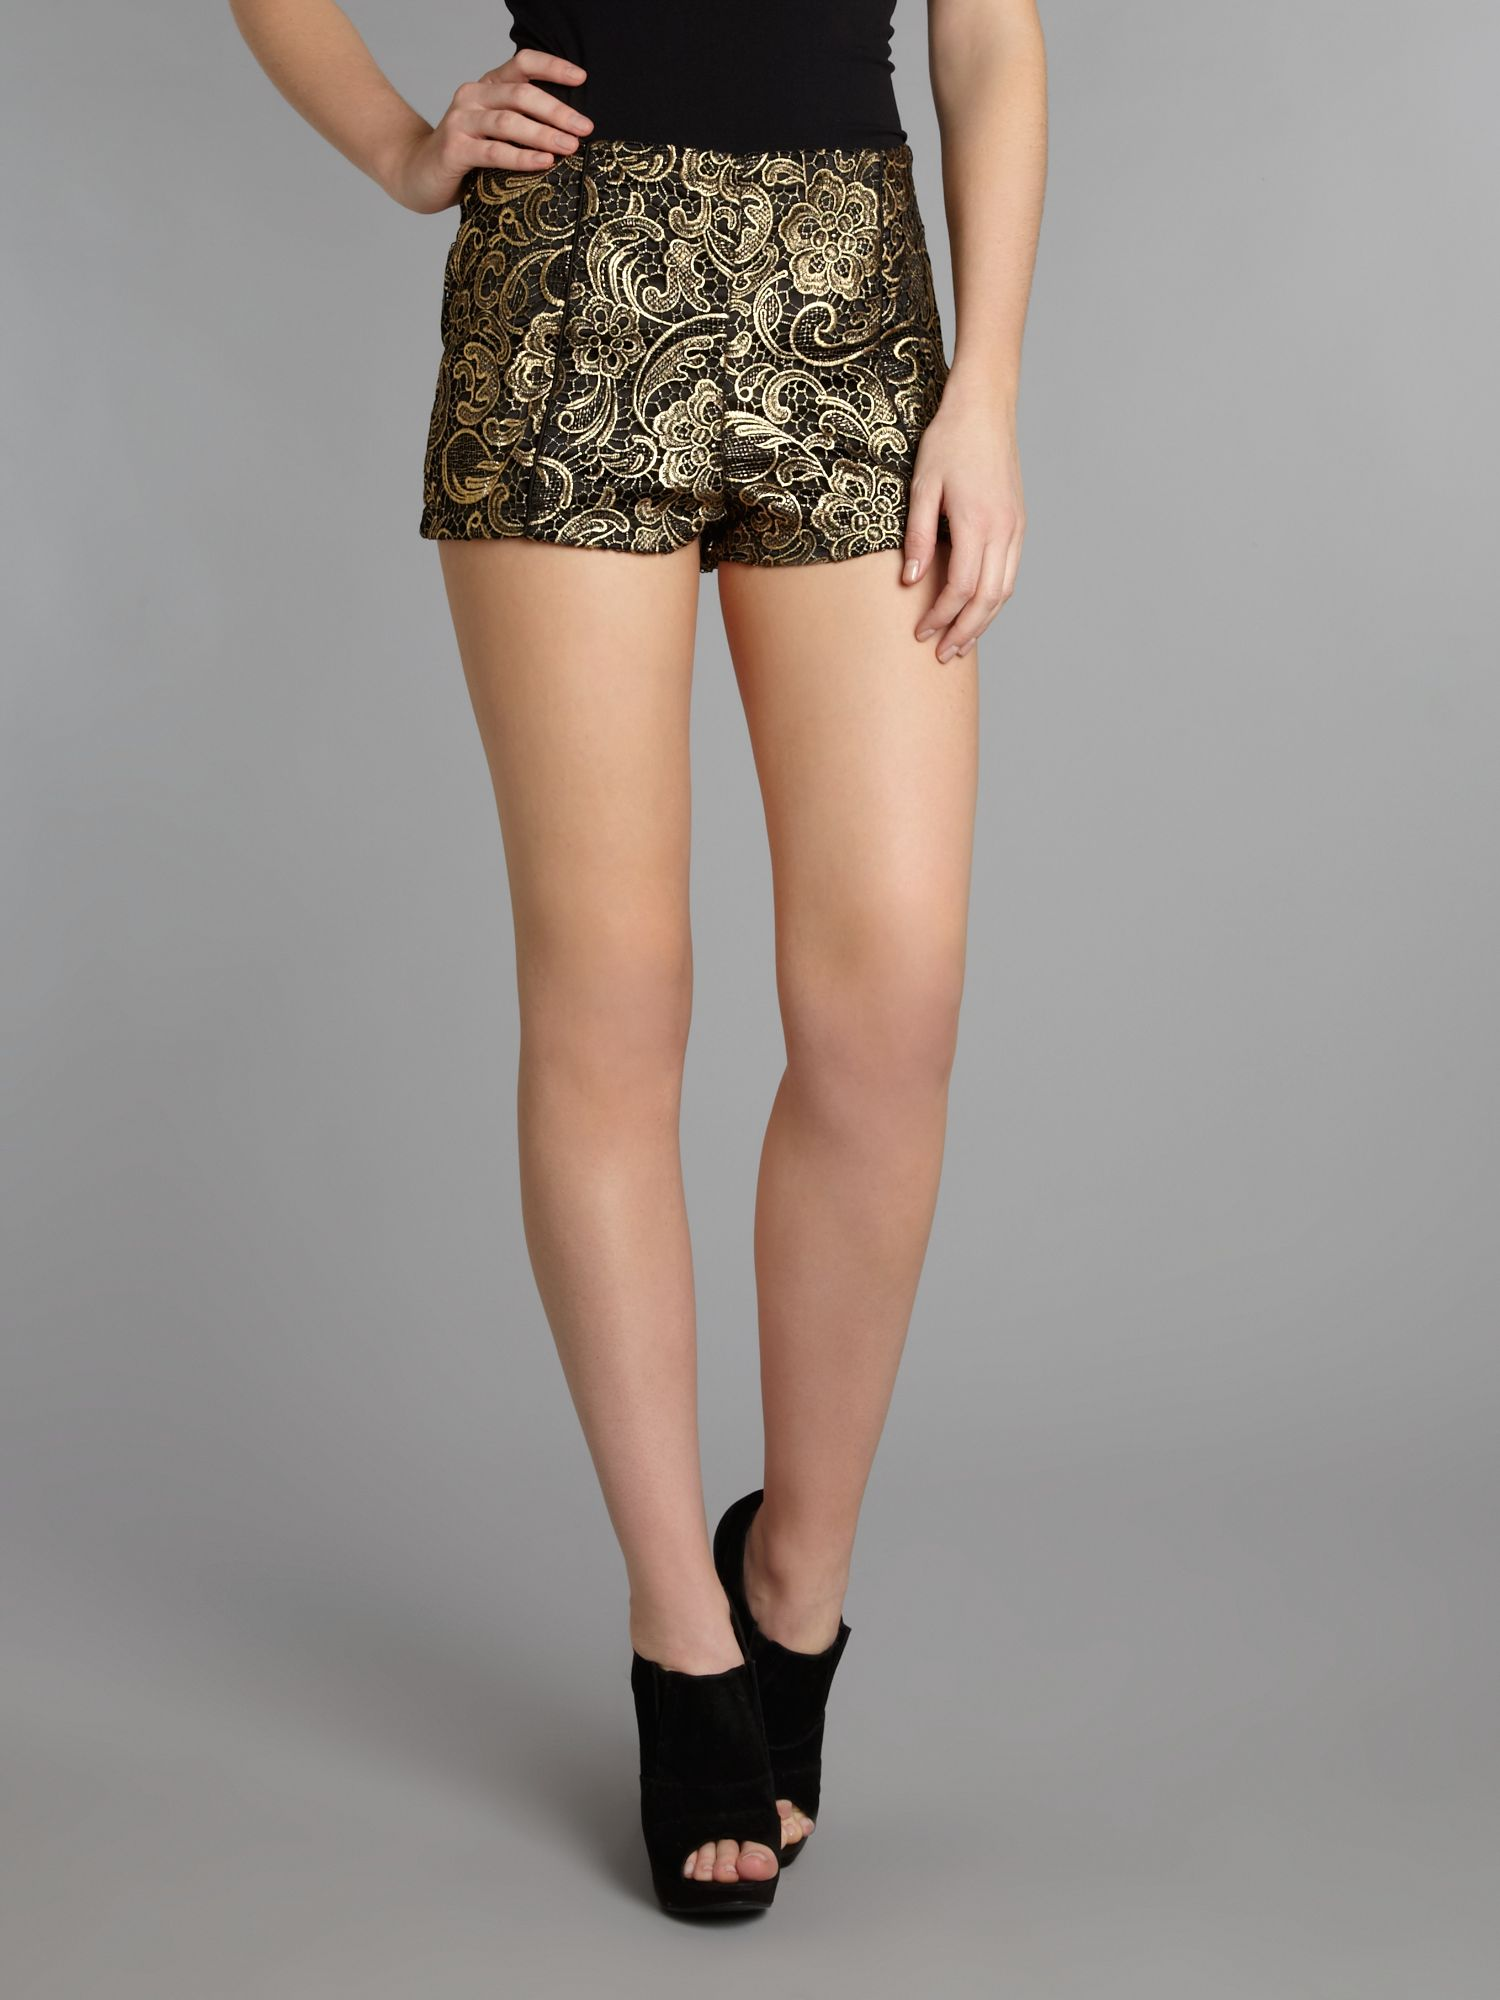 Brocade gold lace shorts